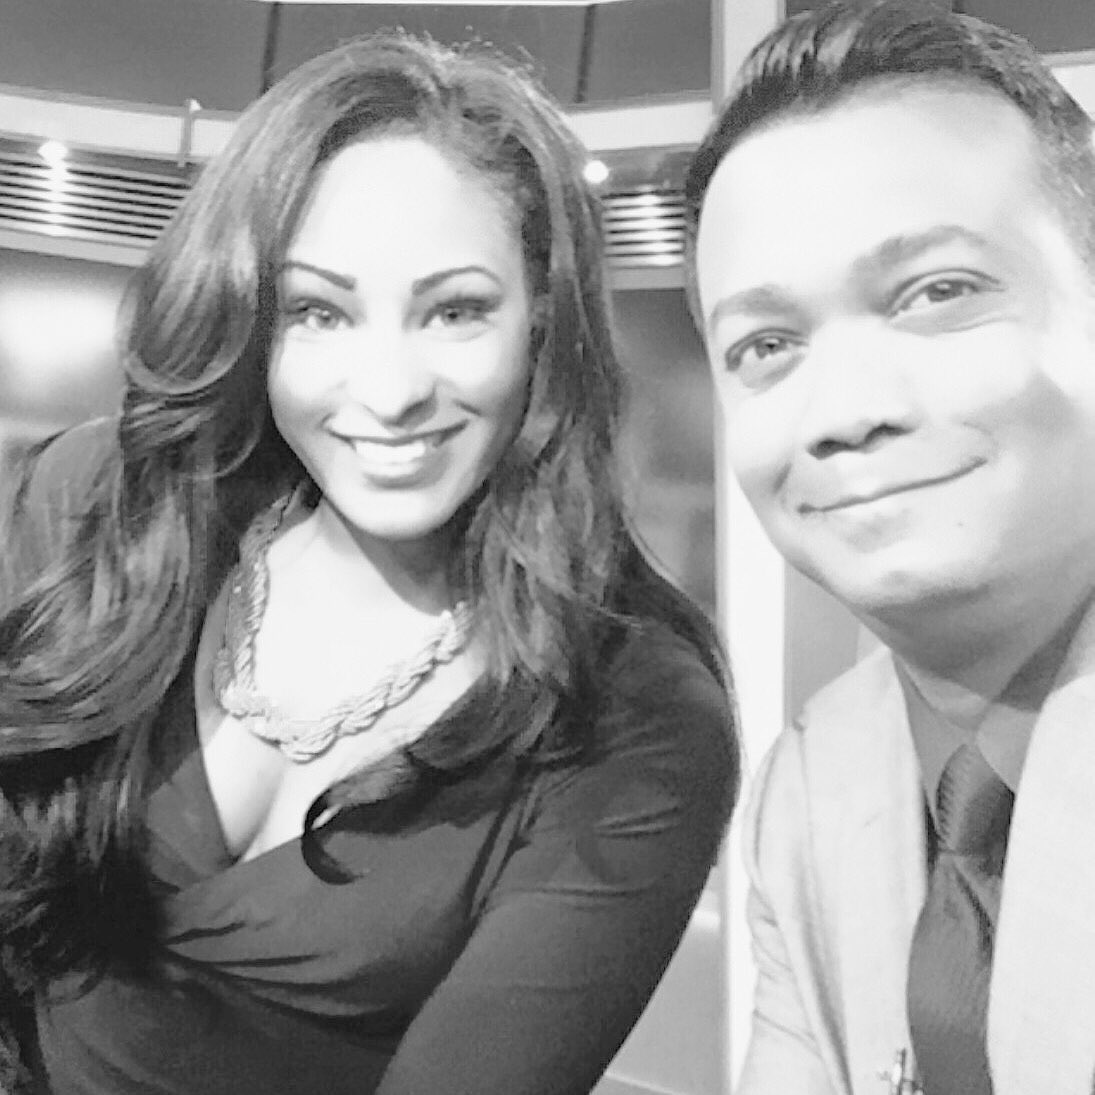 Back in the saddle this morning. Anchoring the news at 5am with @MaurielleFOX2